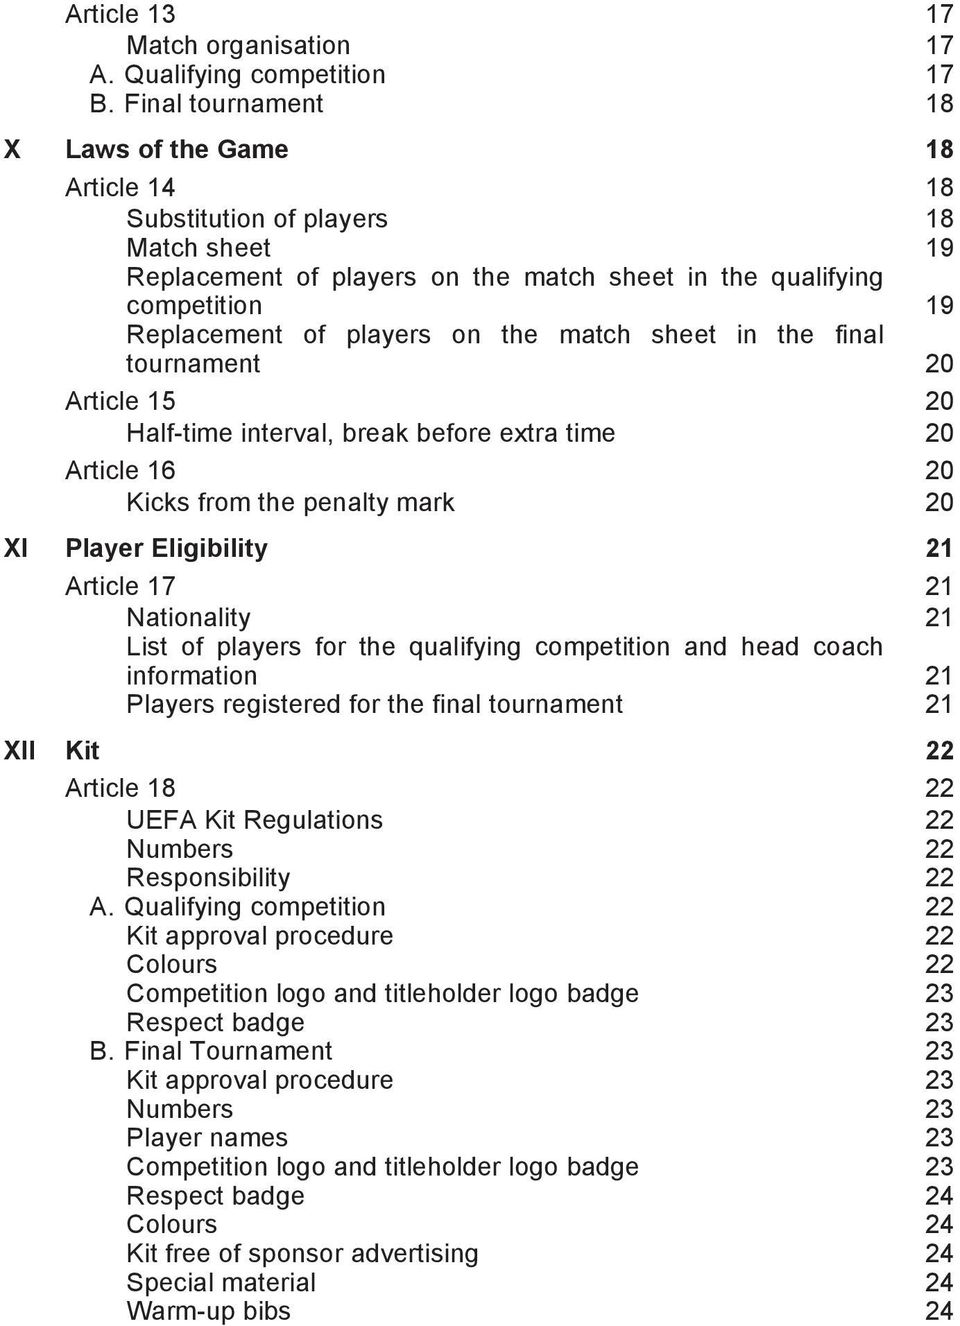 the match sheet in the final tournament 20 Article 15 Half-time interval, break before extra time 20 20 Article 16 Kicks from the penalty mark 20 20 XI Player Eligibility 21 Article 17 Nationality 21